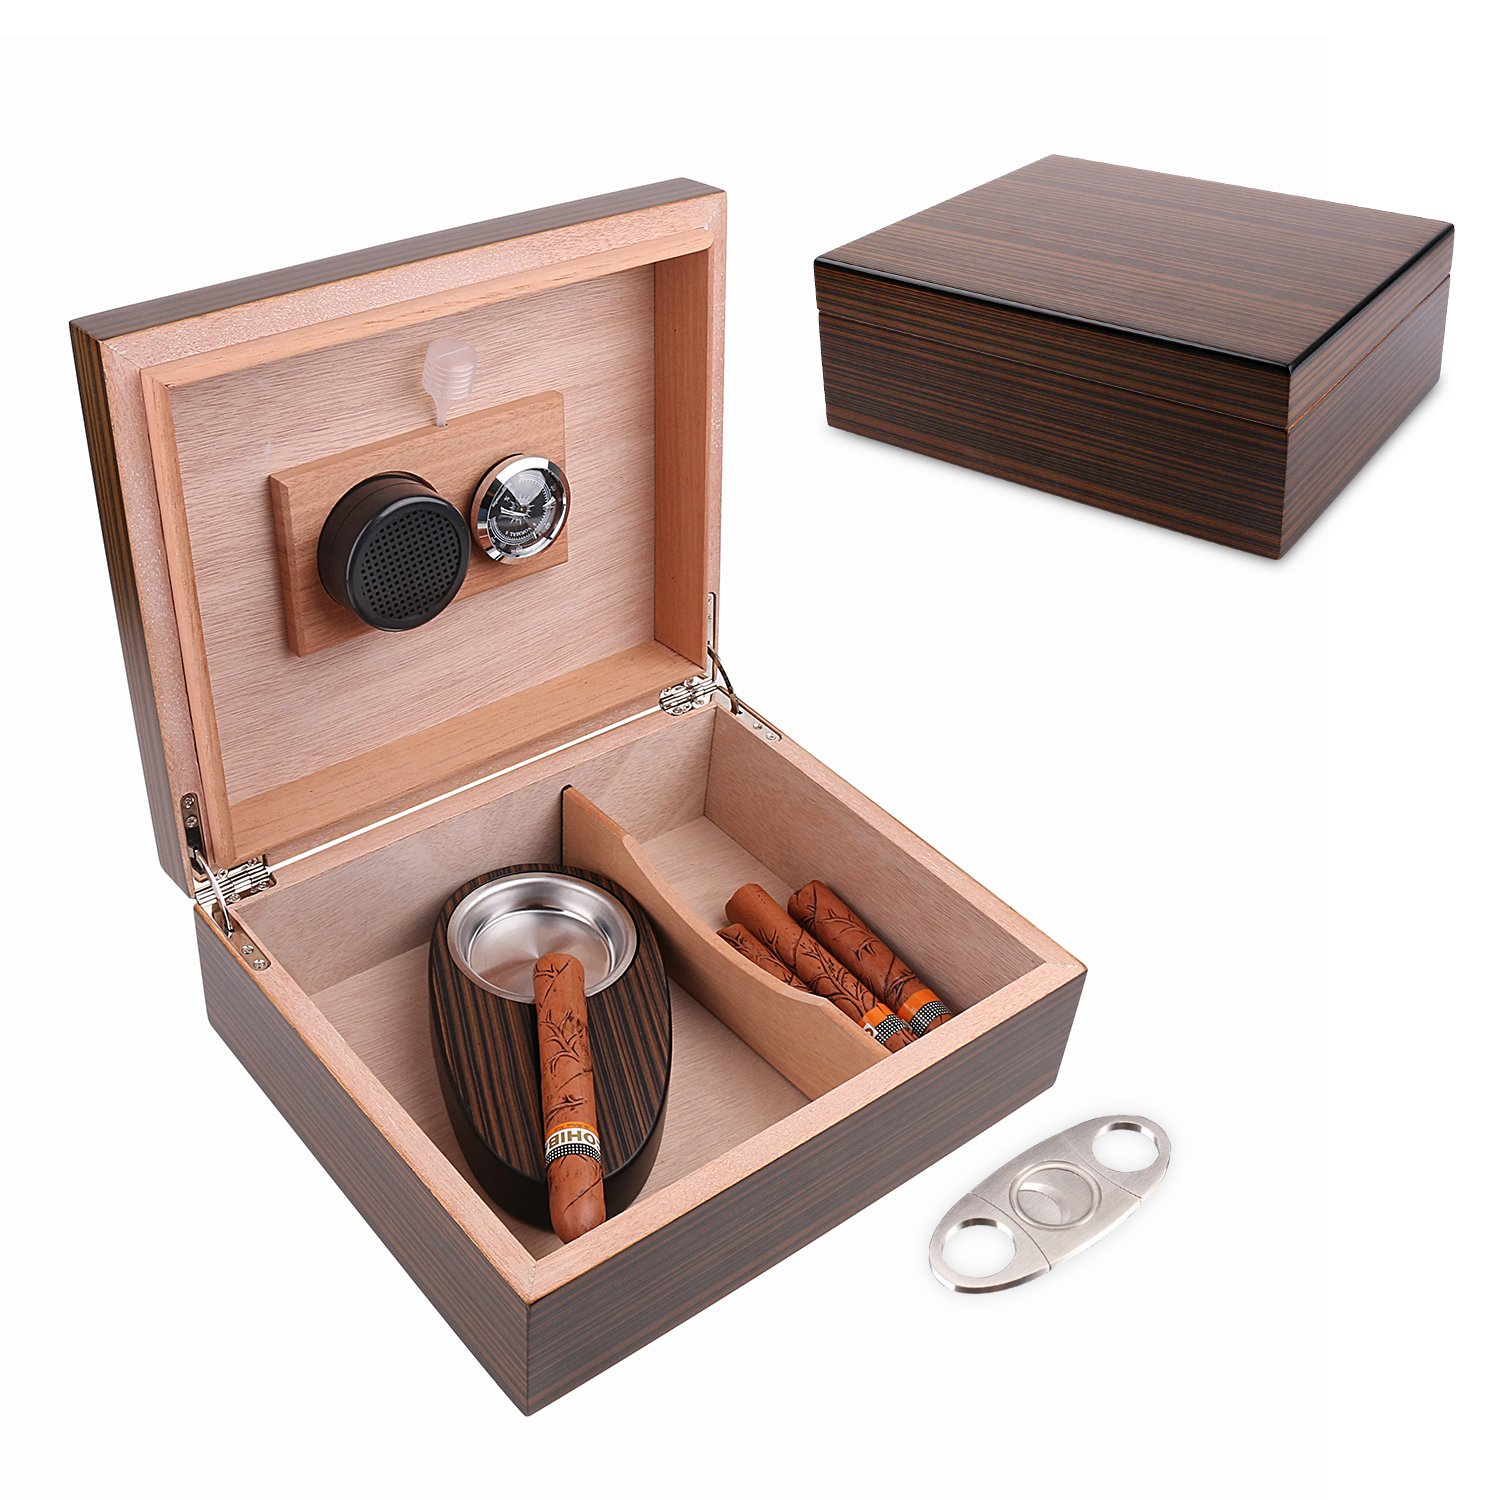 A Comely Cigar Humidor for 25-50 Cigars, Ebony, Spanish Cedar Wood Lined/Divider, Hygrometer and Humidifier, Ebony w Stainless Steel Astray/ Cigar Cutter, Luxury Cigar Box Gift Set